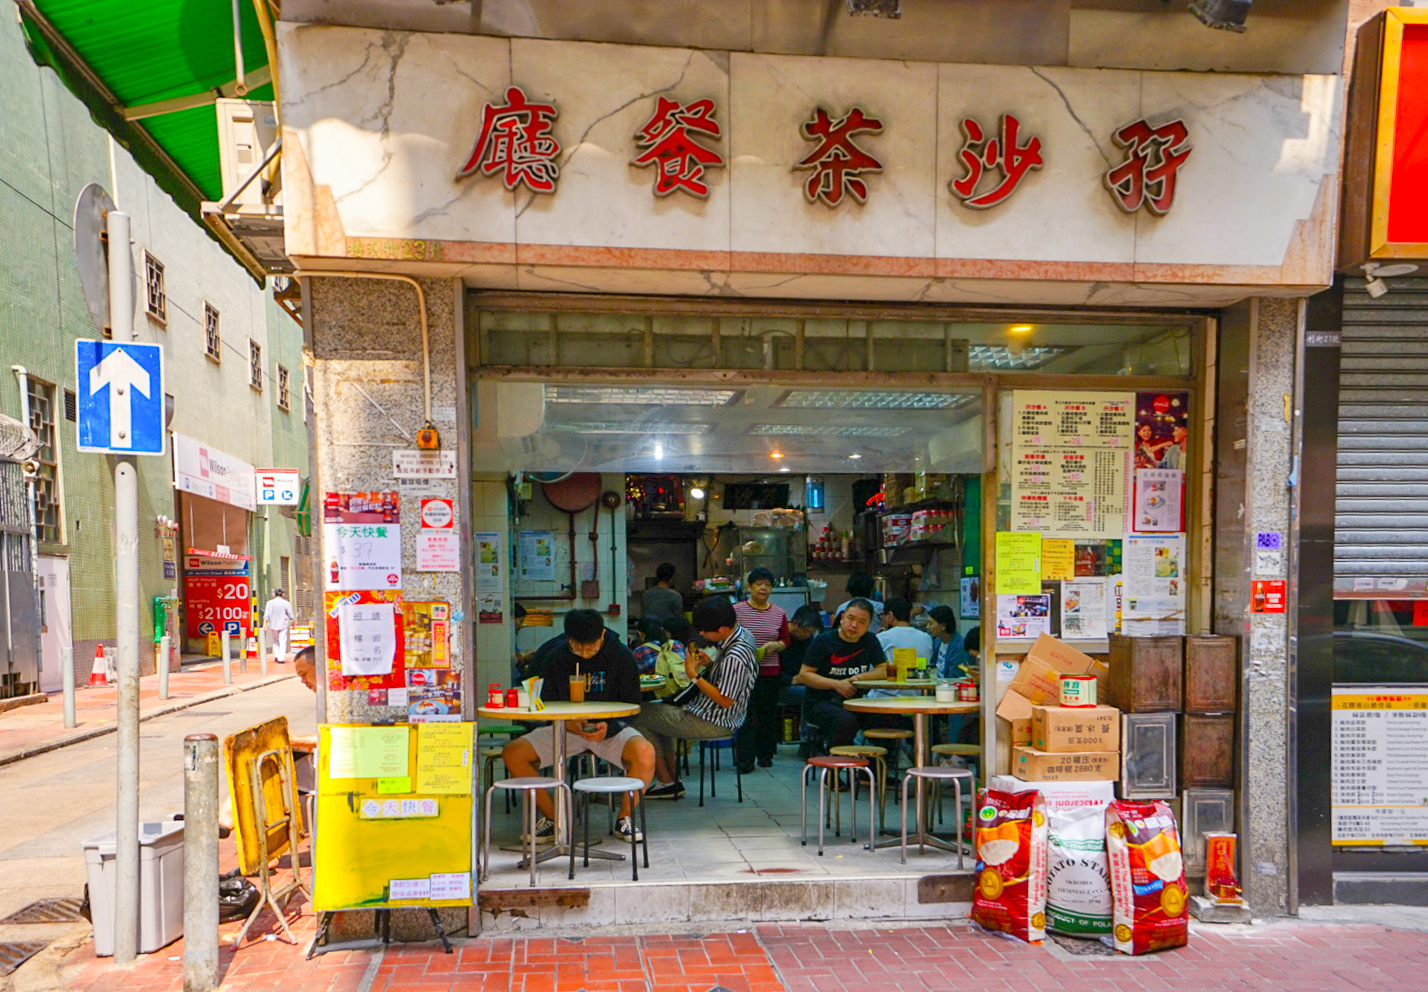 Ma Sa Restaurant in Hong Kong